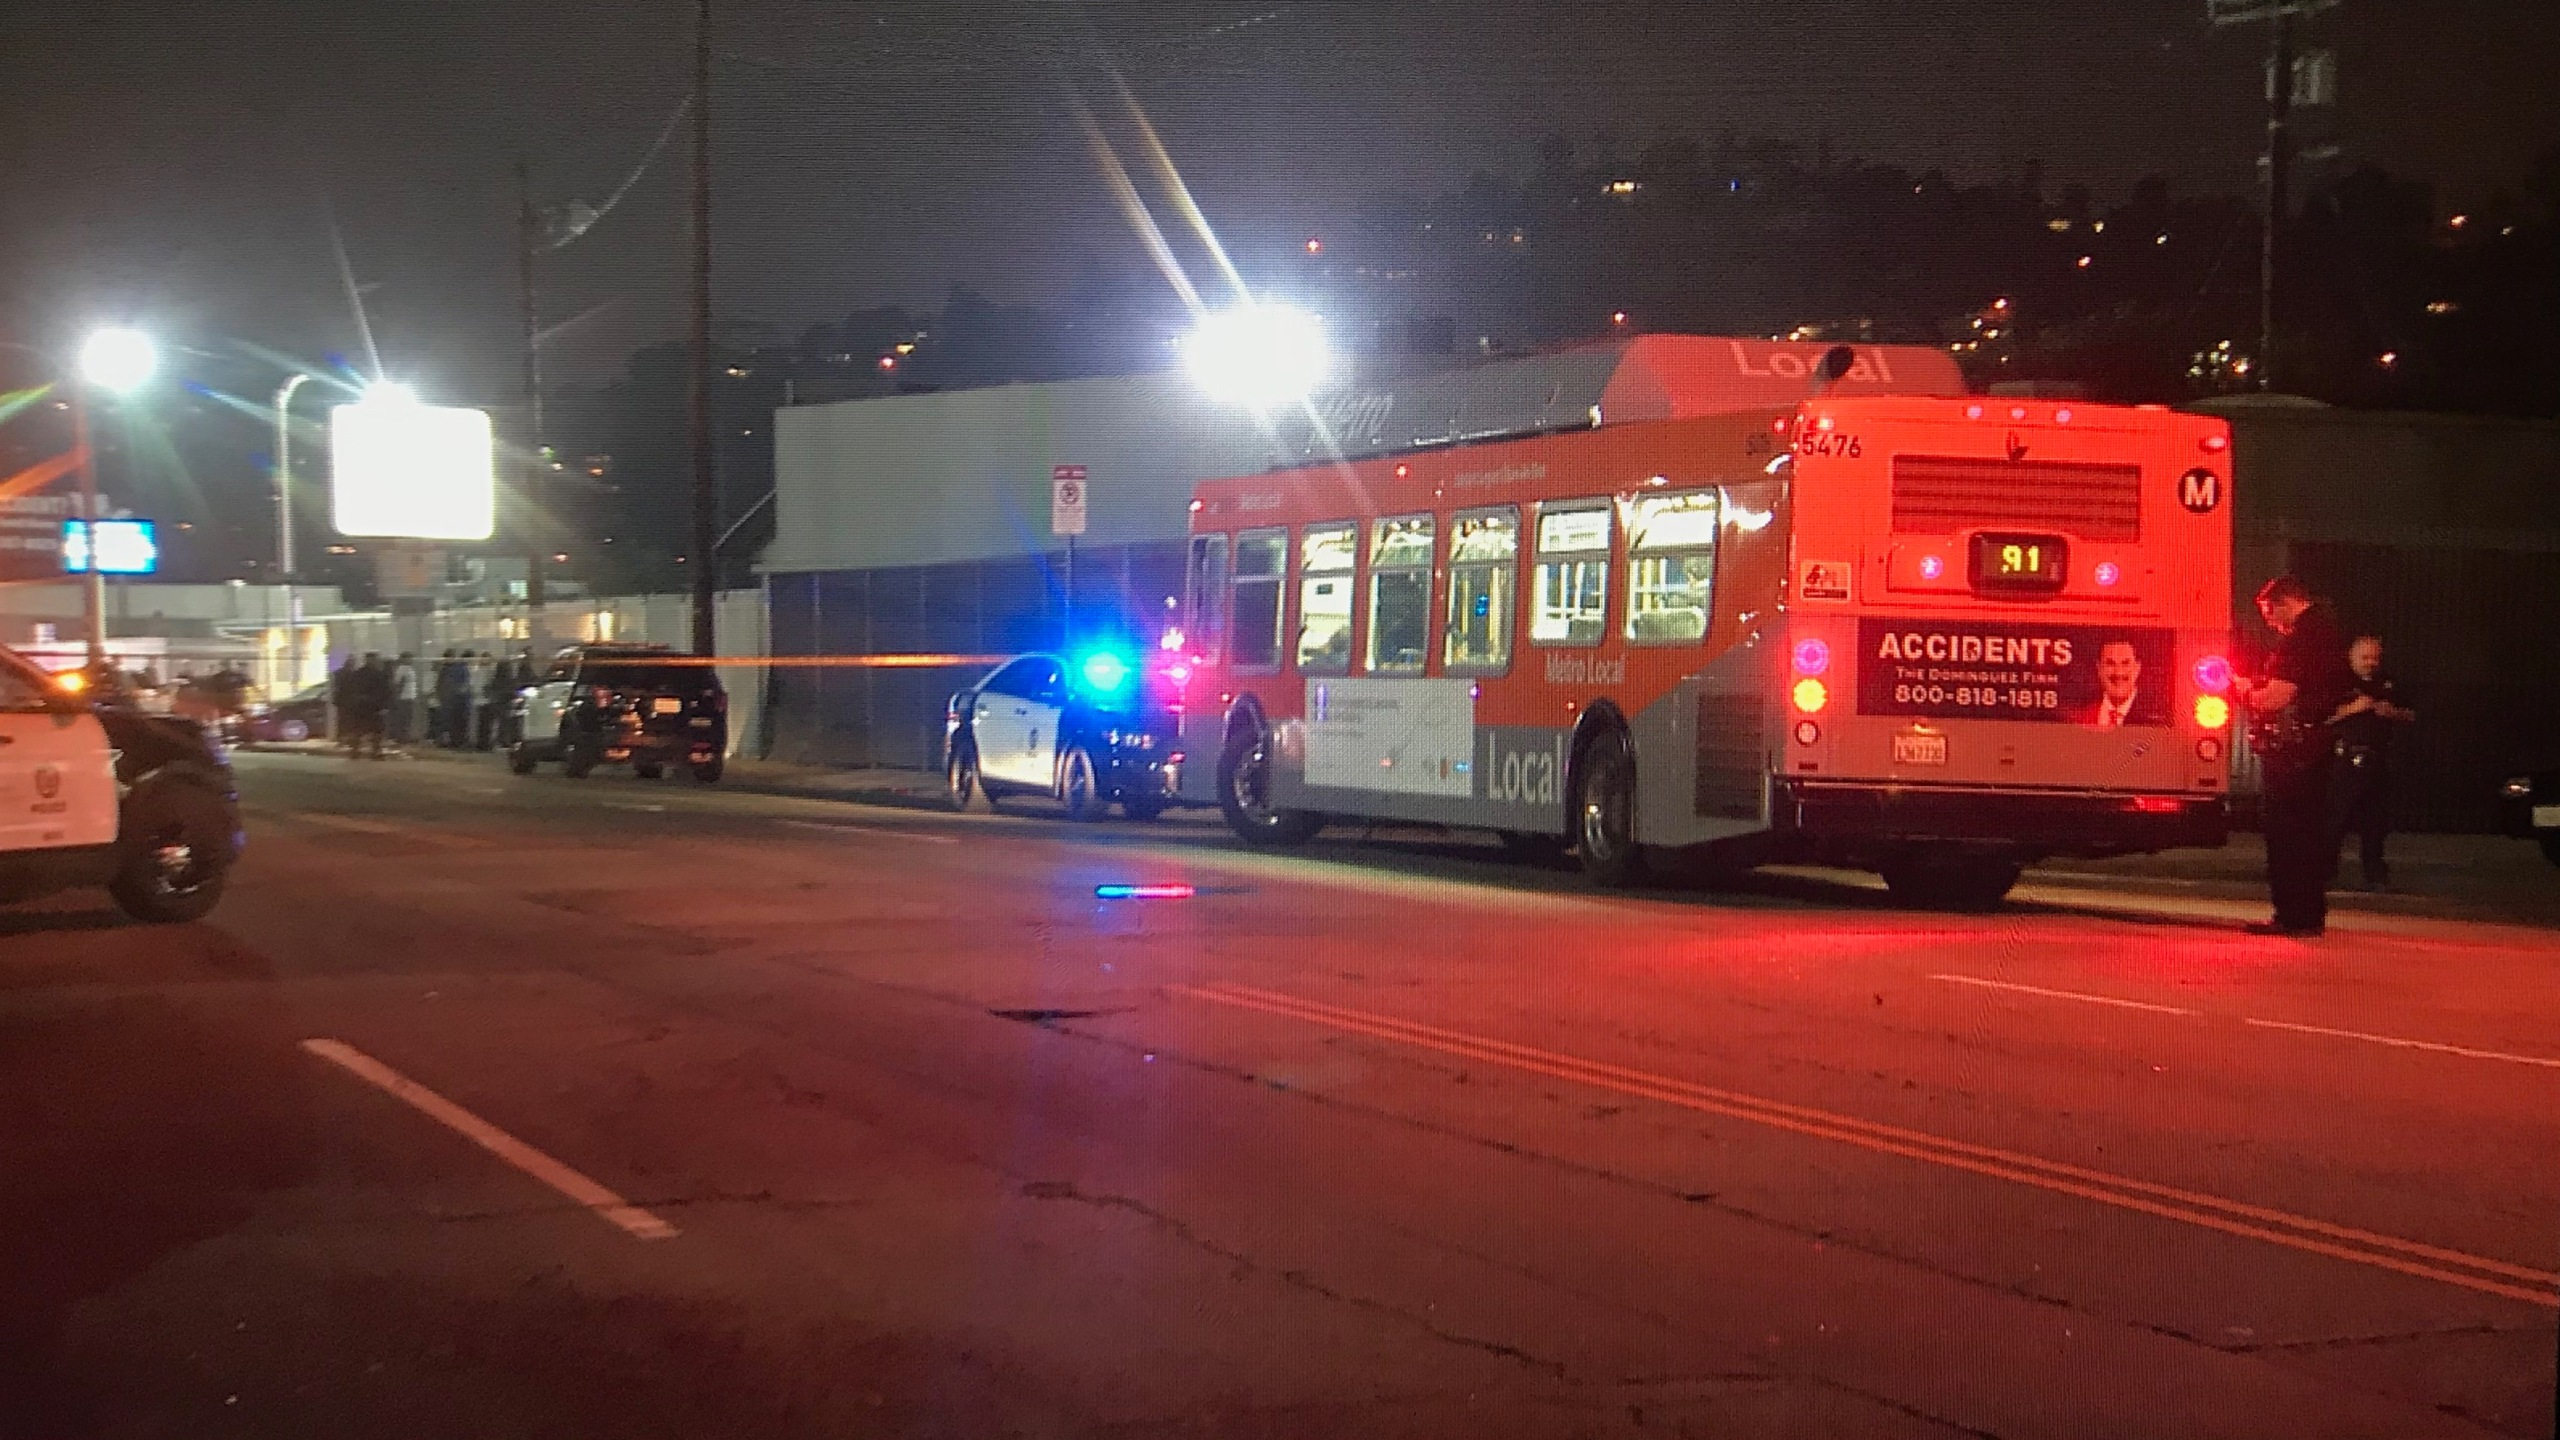 Police investigate a shooting that left five people wounded in Cypress Park on April 27, 2019. (Credit: KTLA)